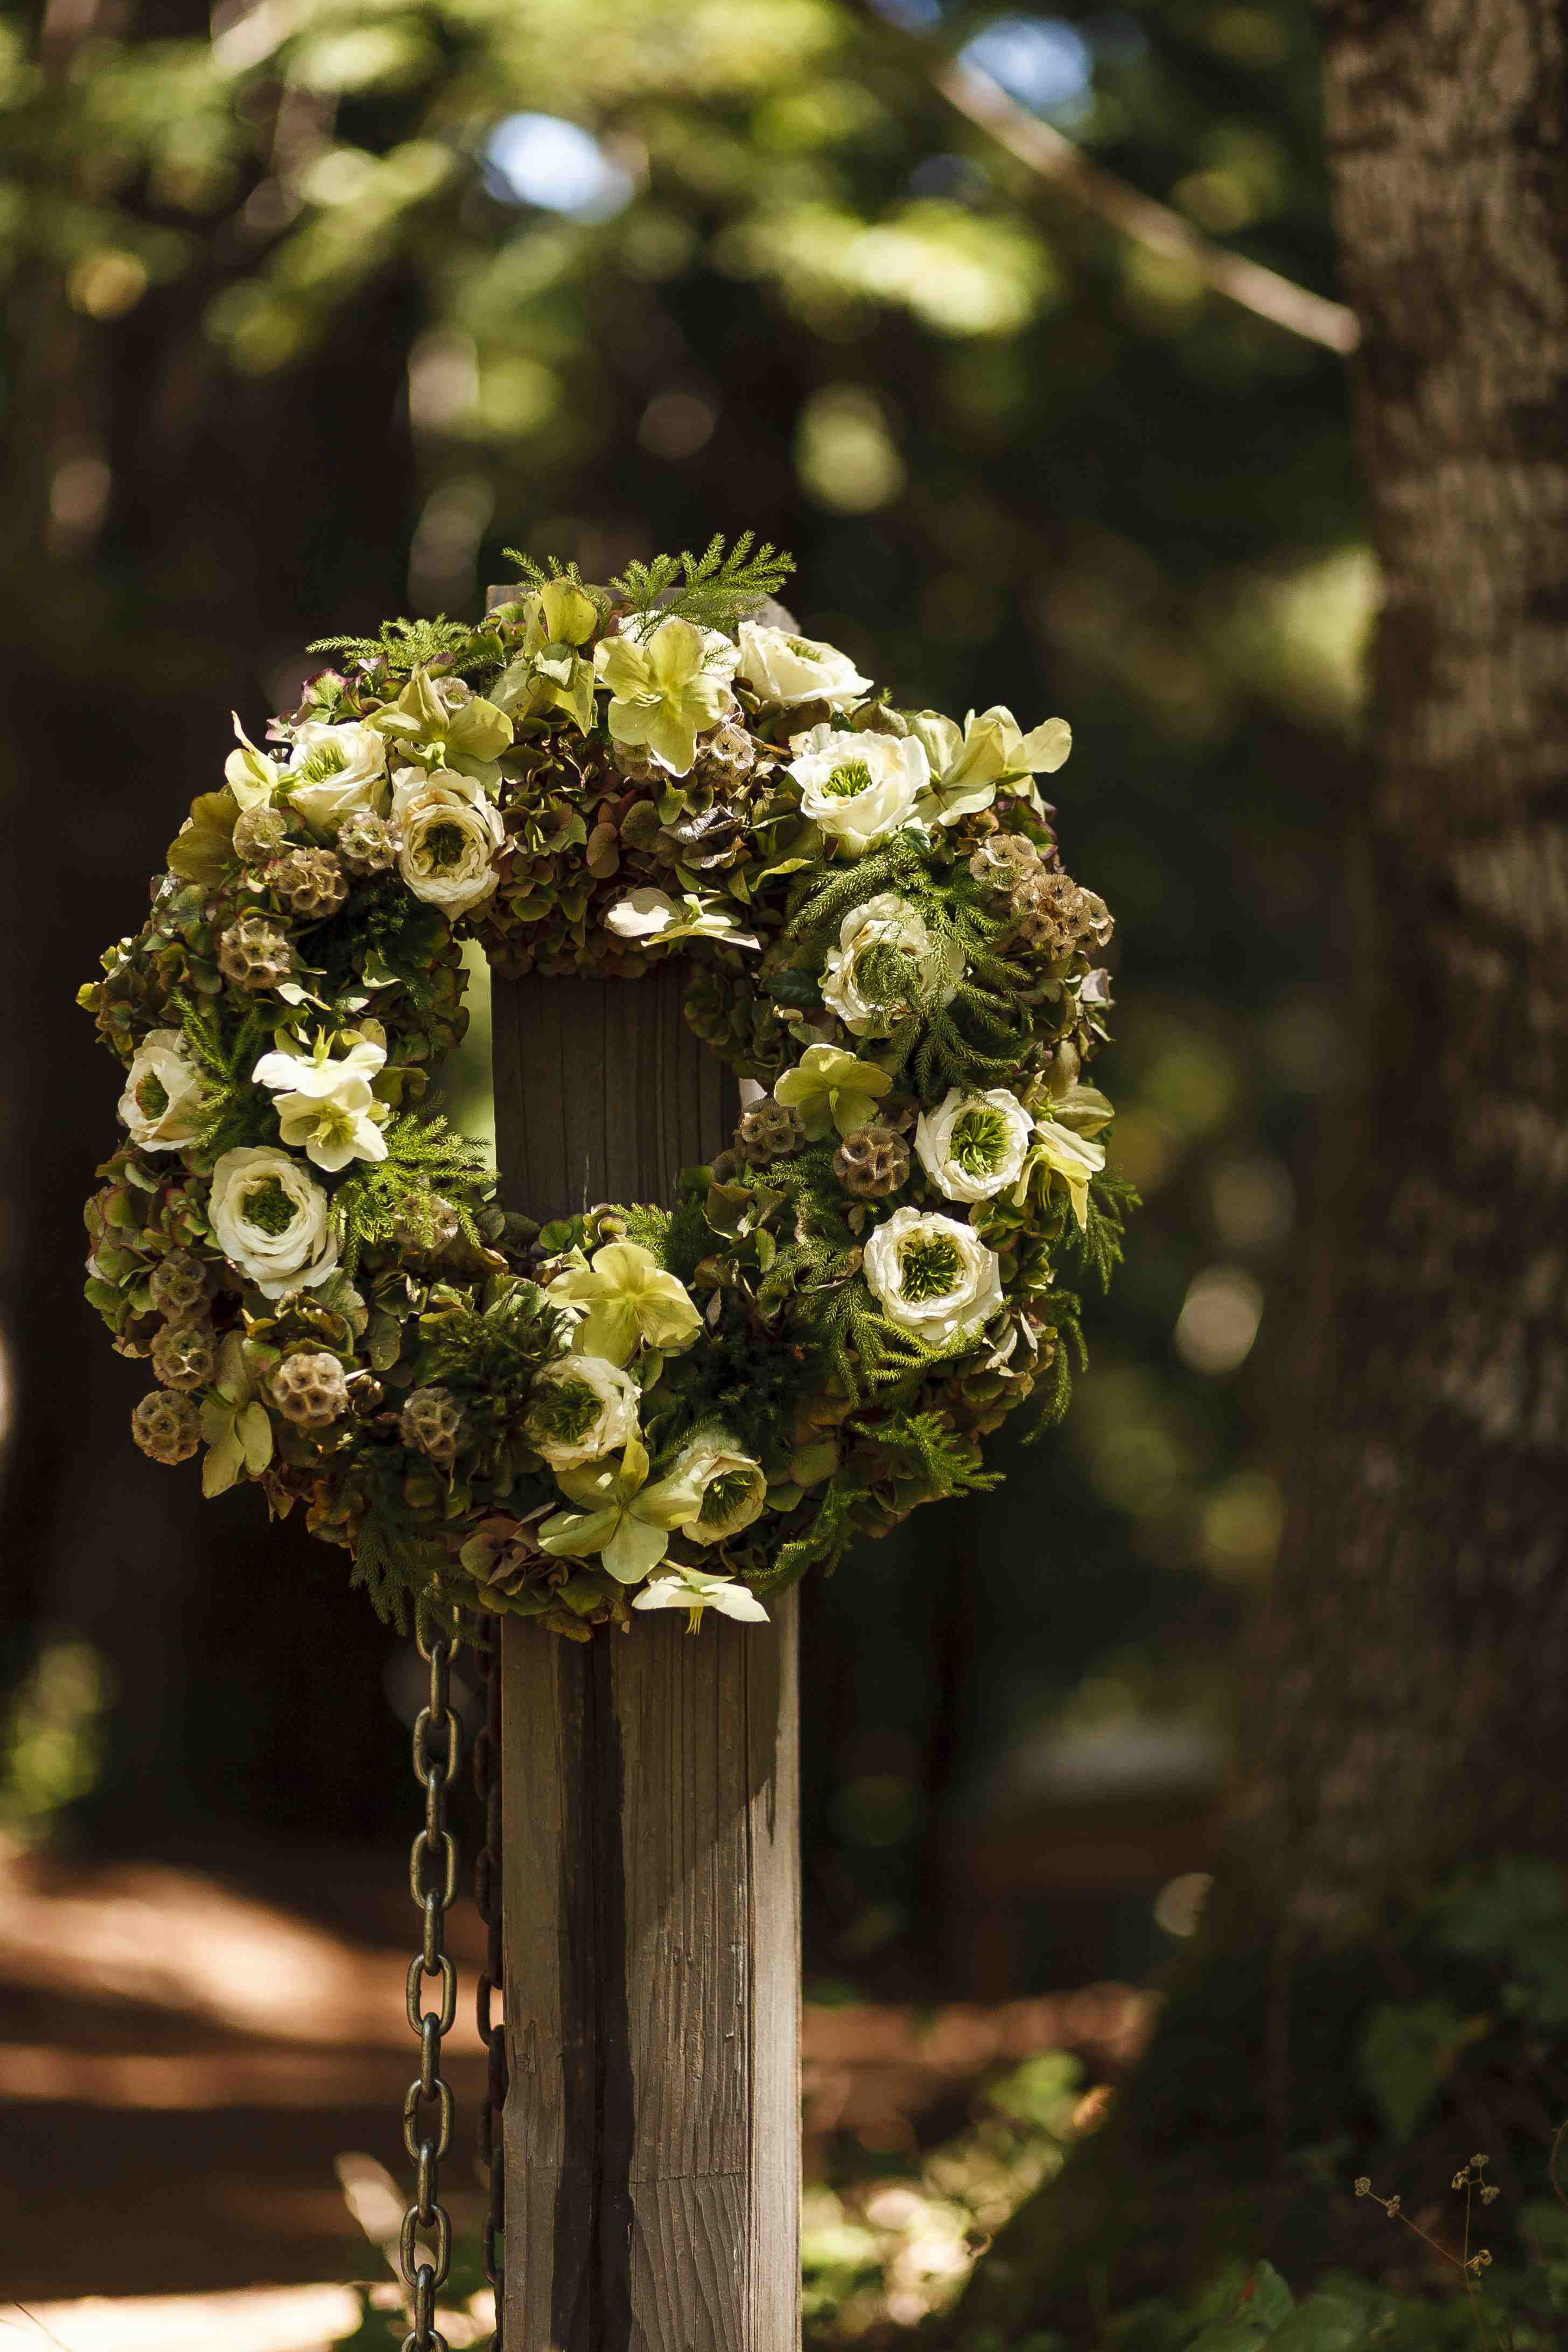 Rustic wedding ceremony forest venue wreath decor